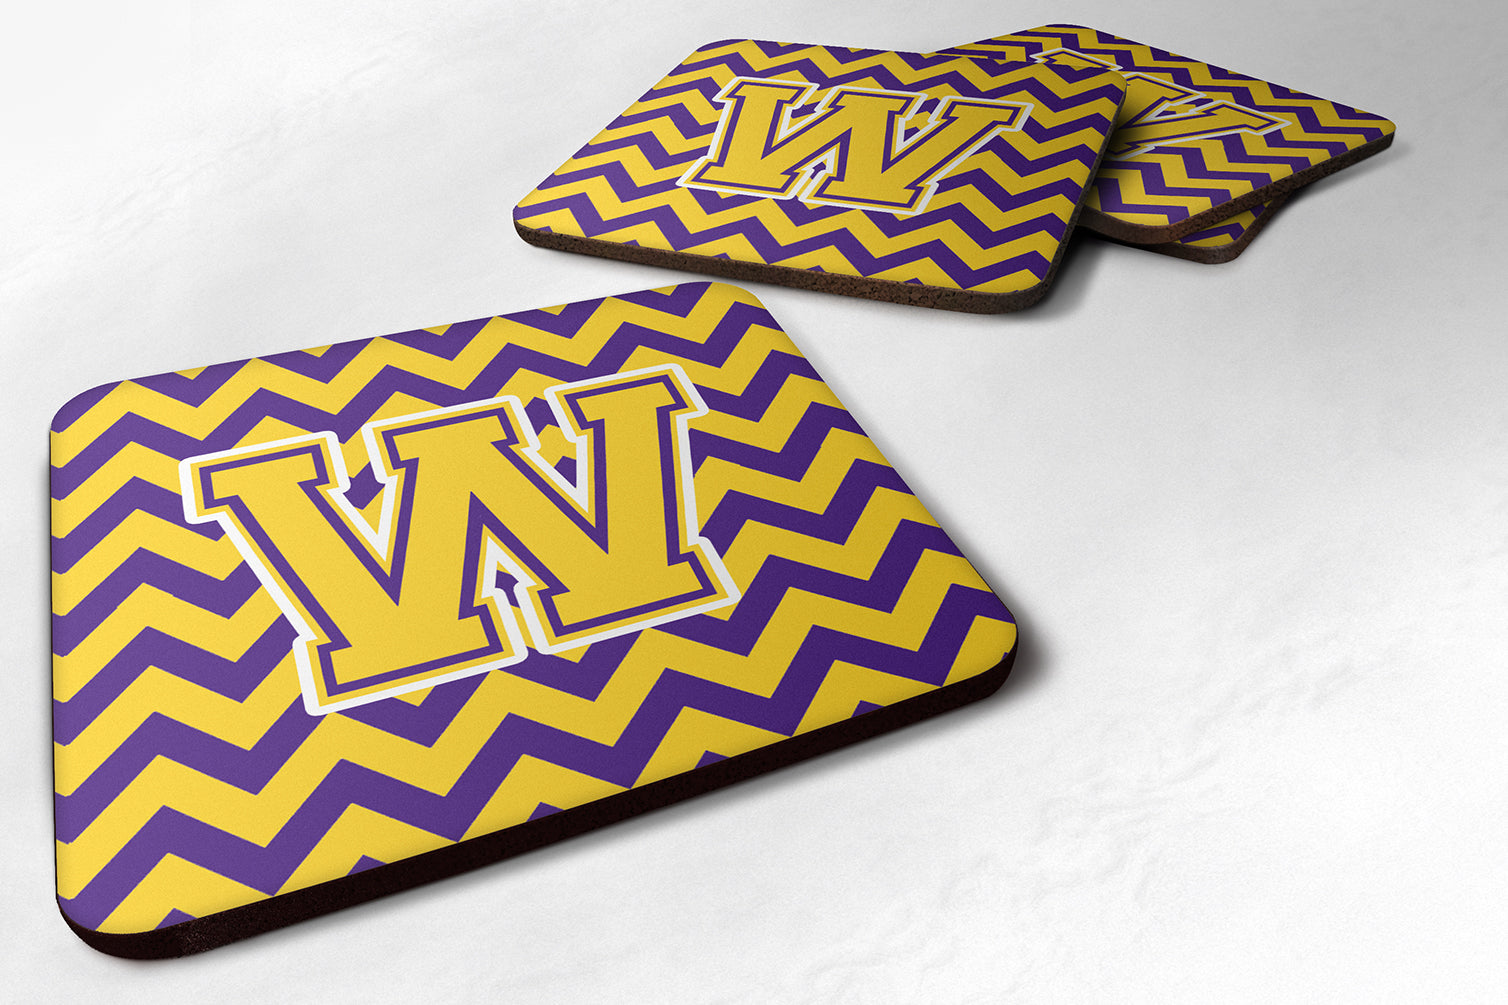 Letter W Chevron Purple and Gold Foam Coaster Set of 4 CJ1041-WFC by Caroline's Treasures